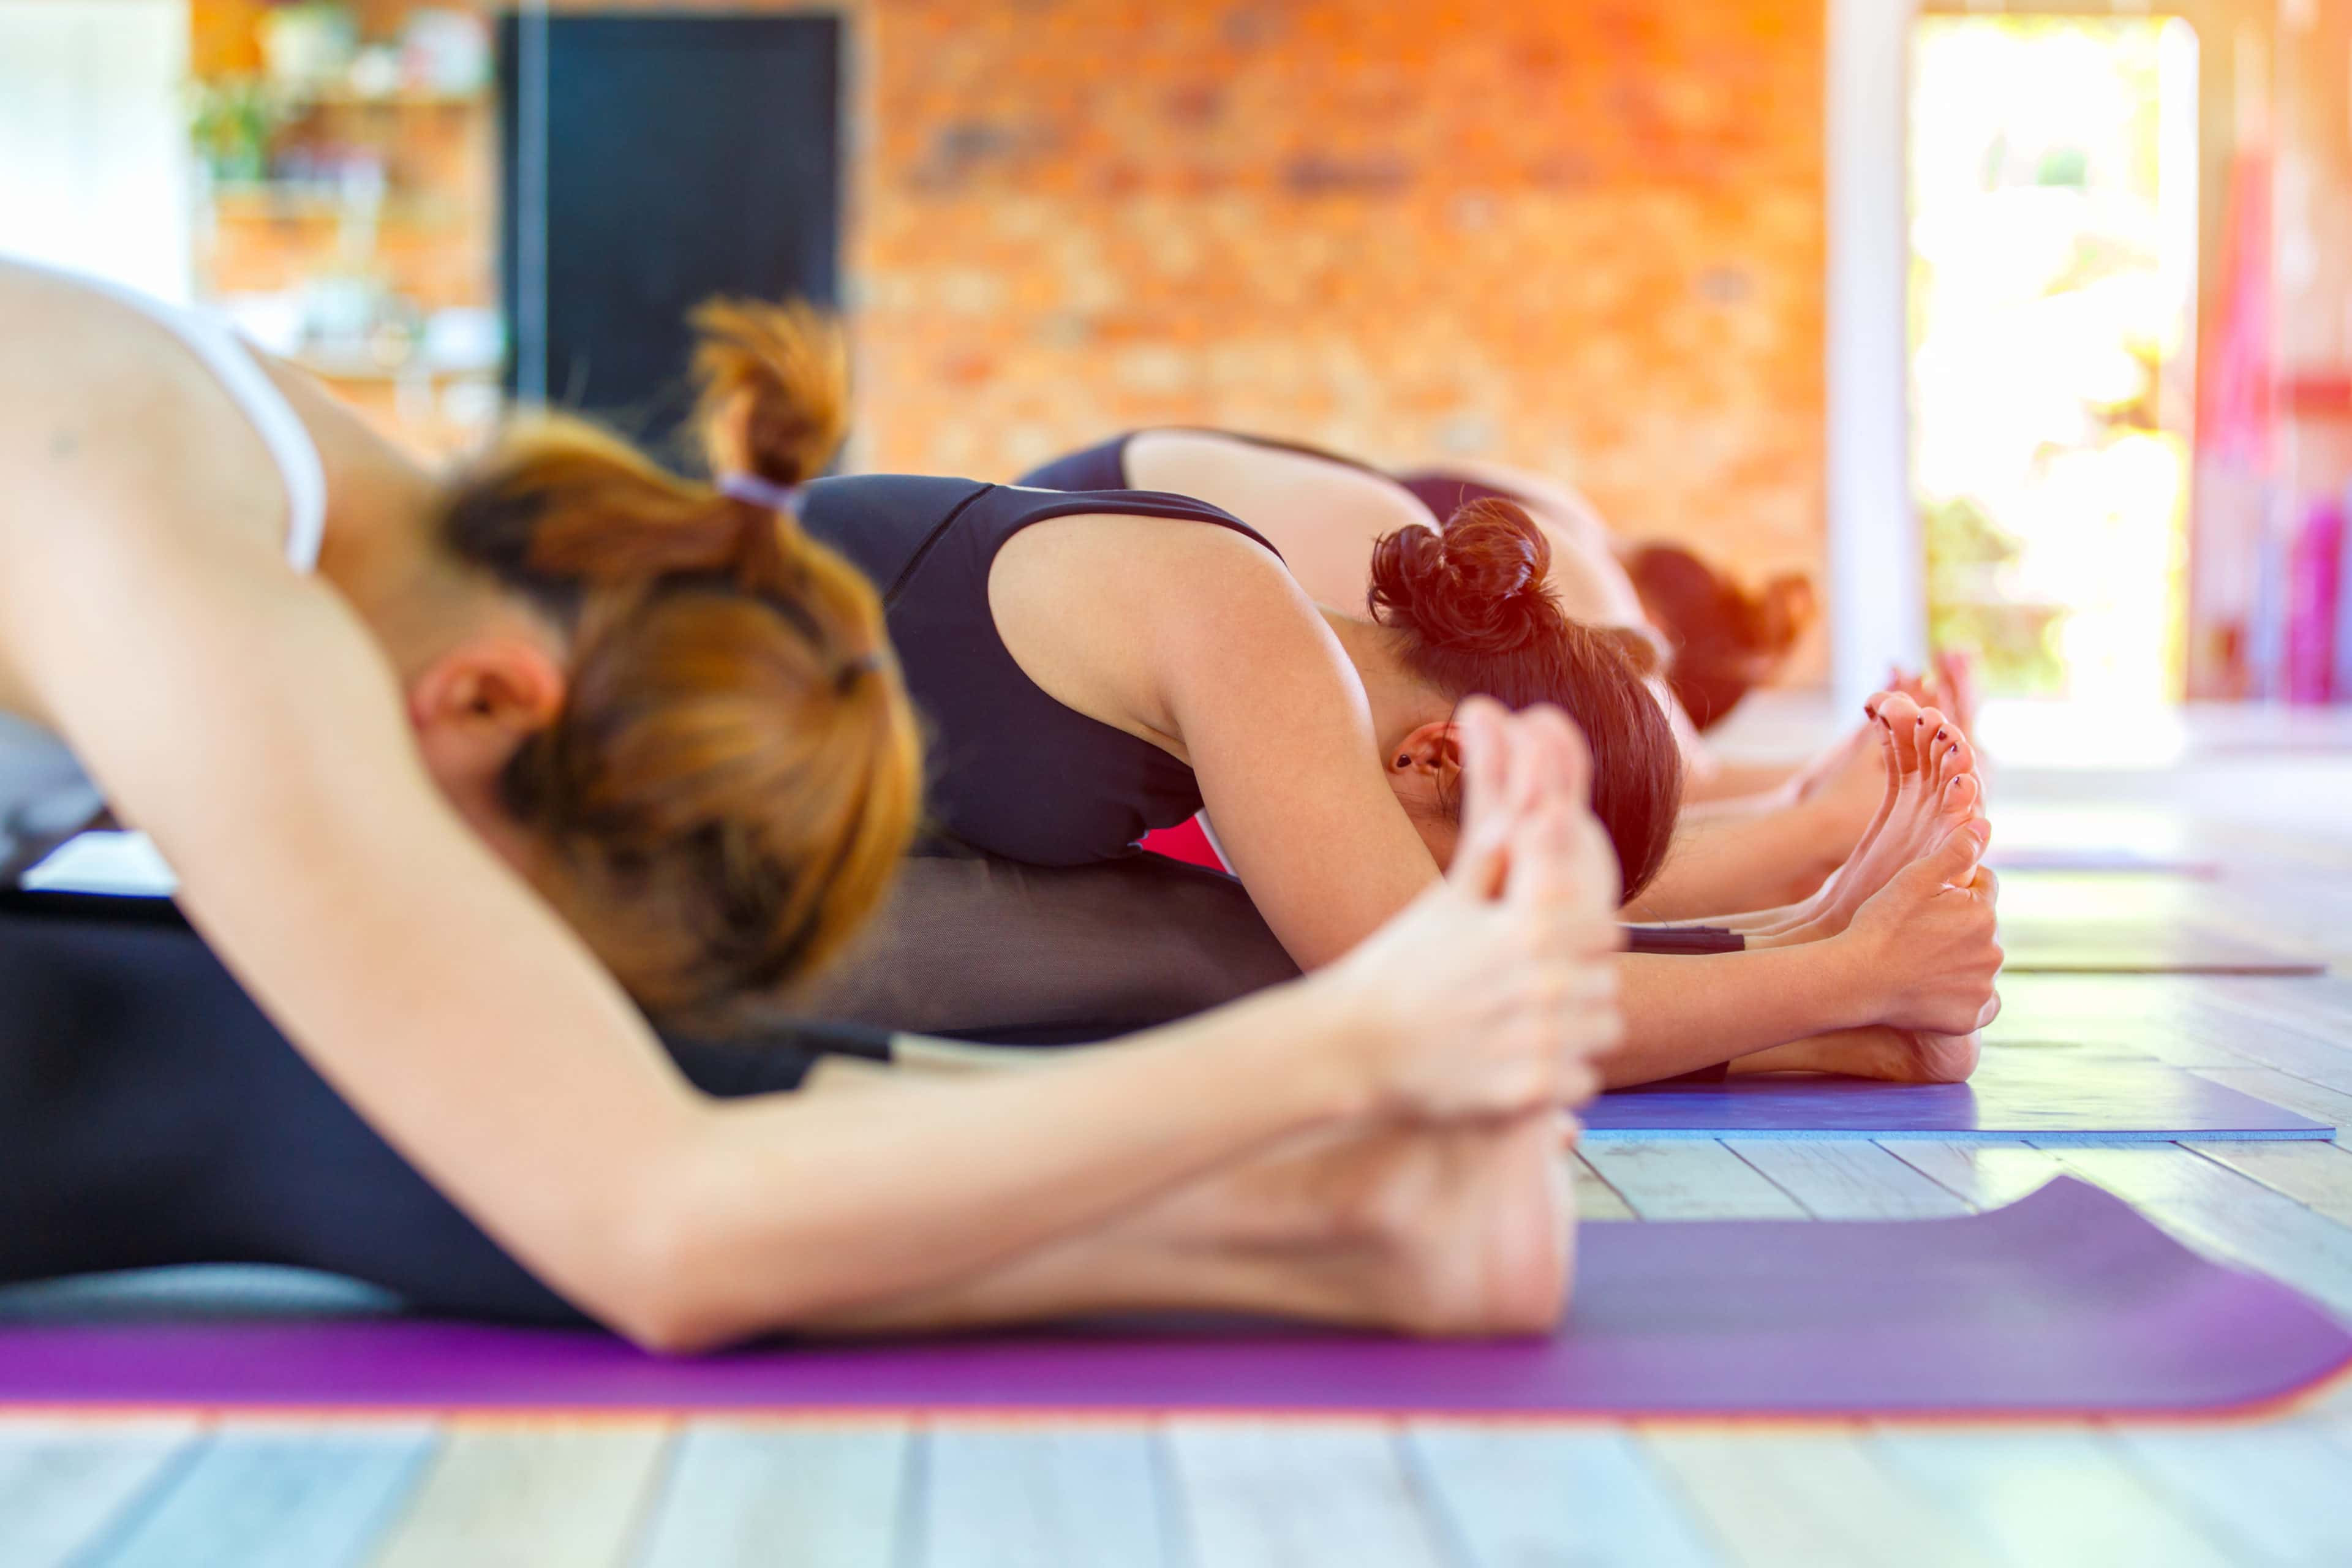 Group Yoga (5+ People) Session